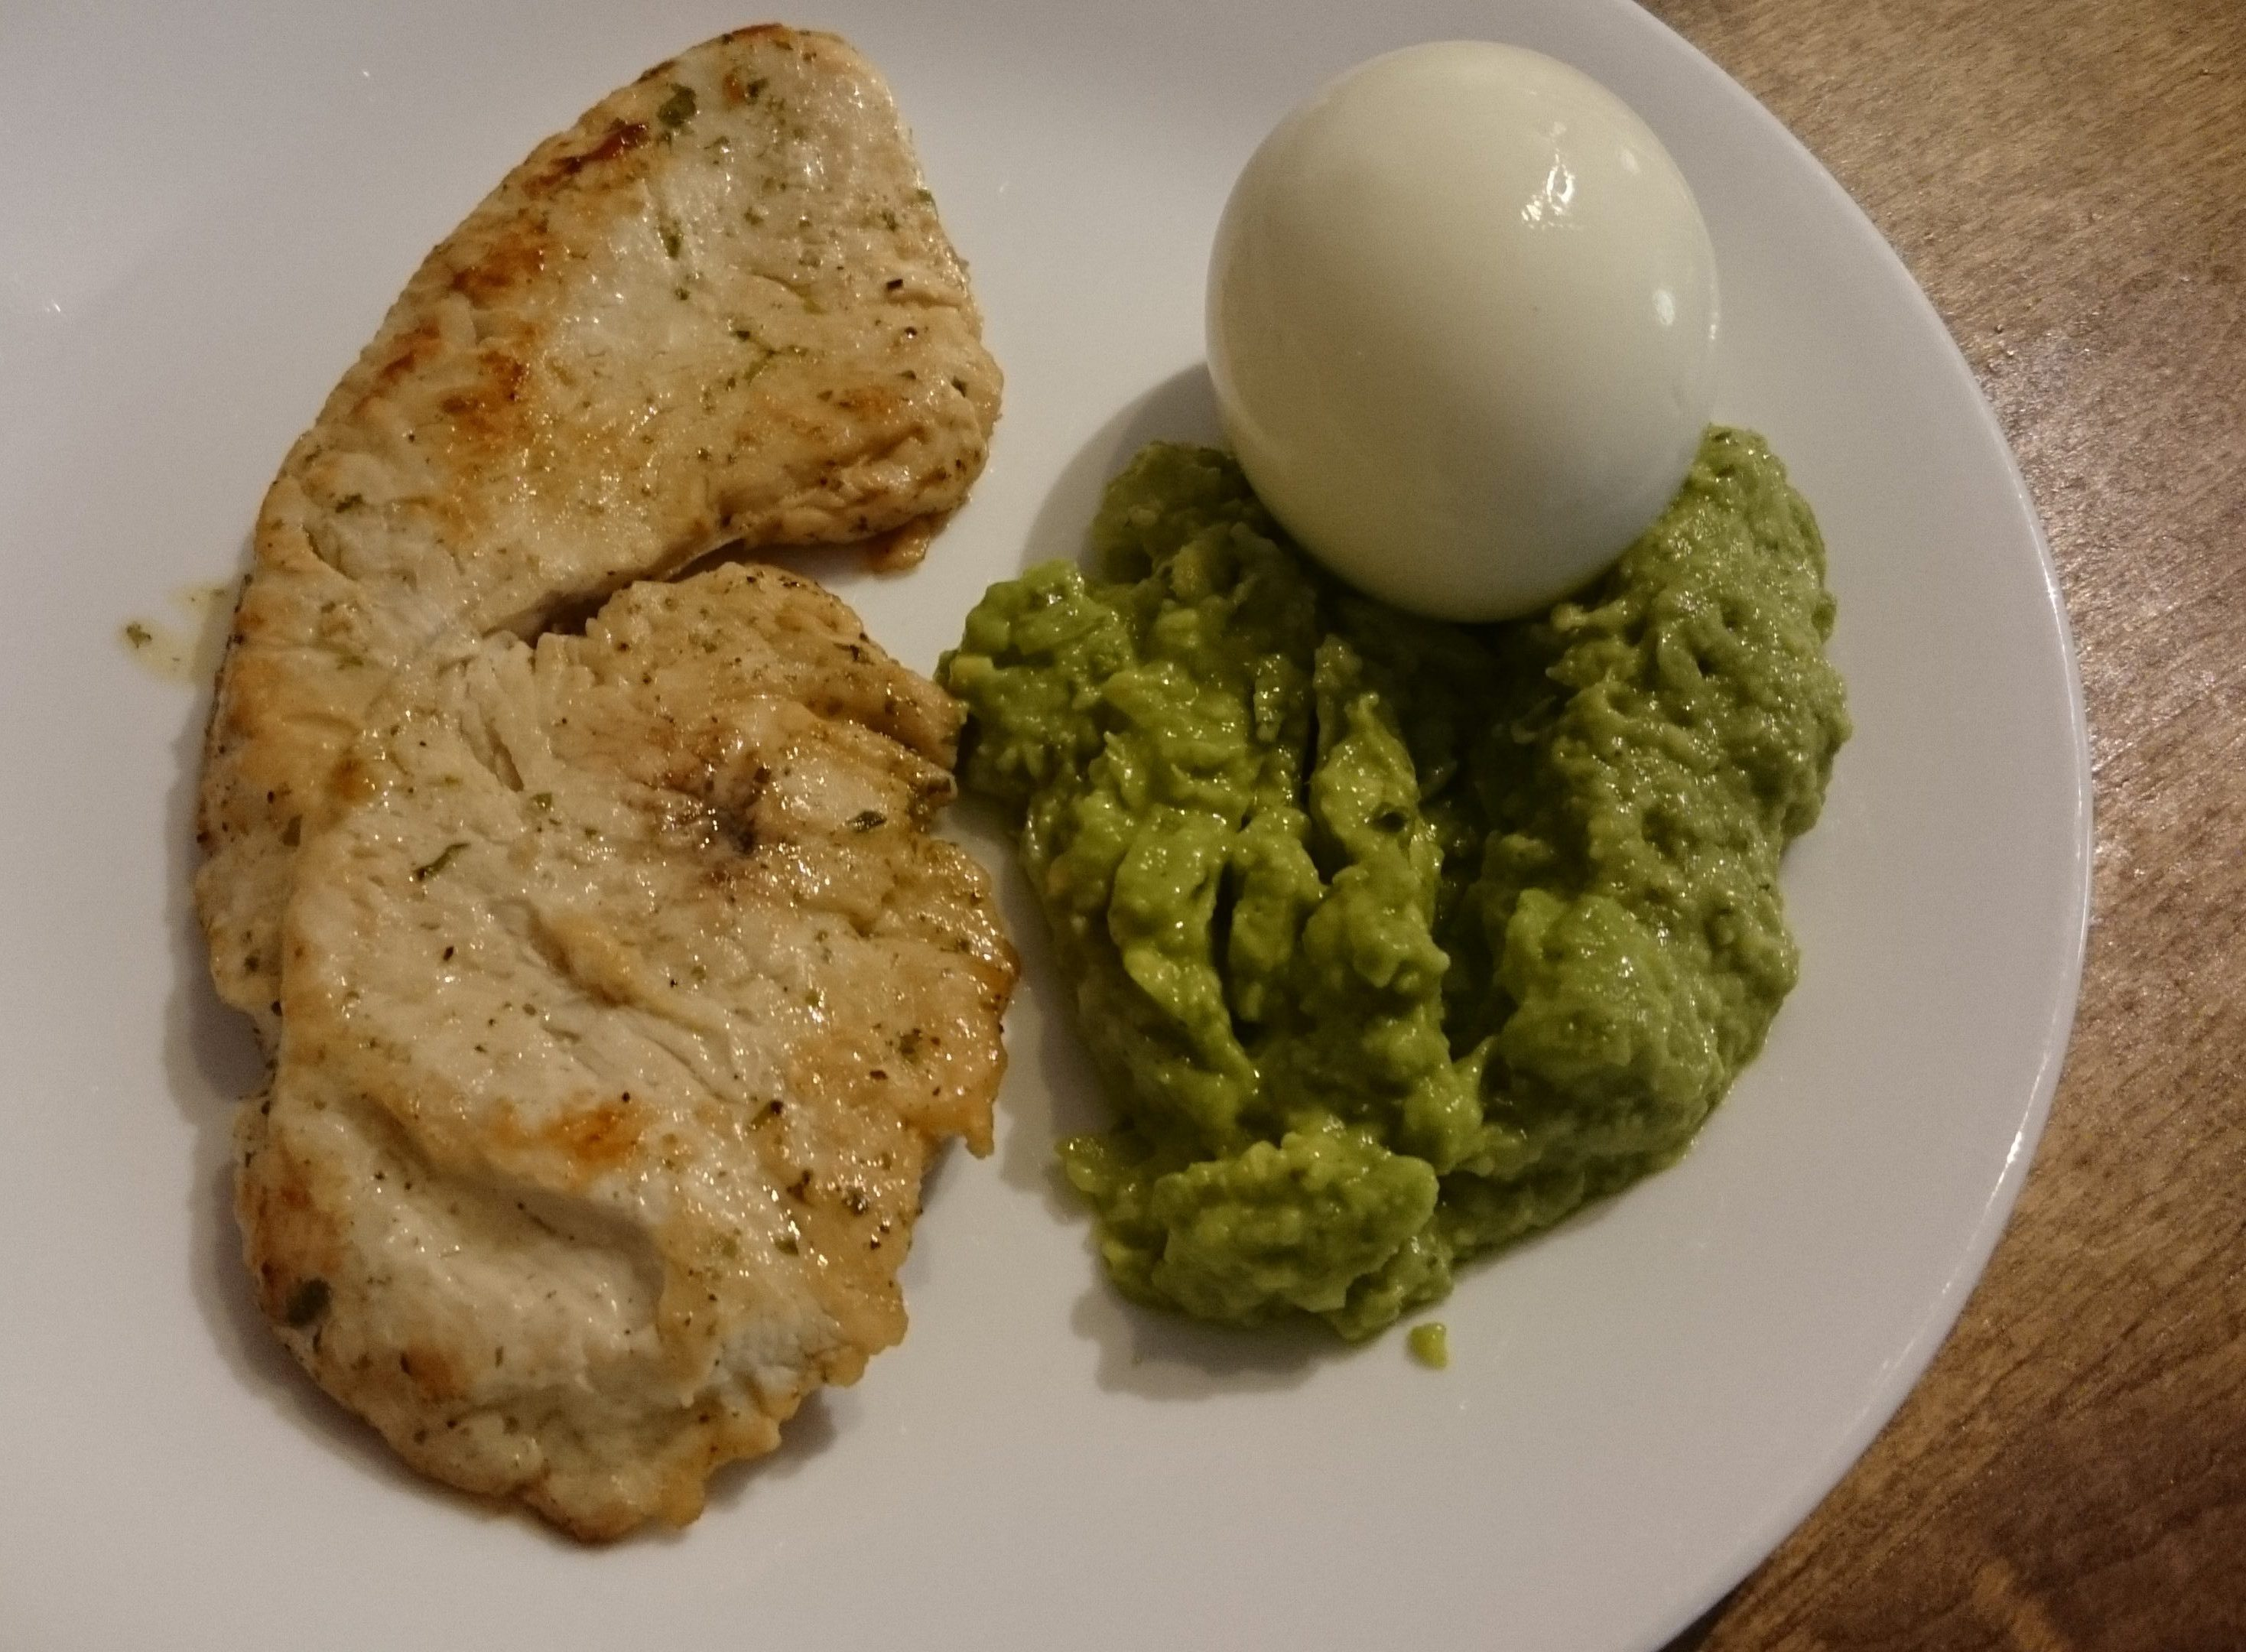 Eggs and avocados are a great source of healthy fats.